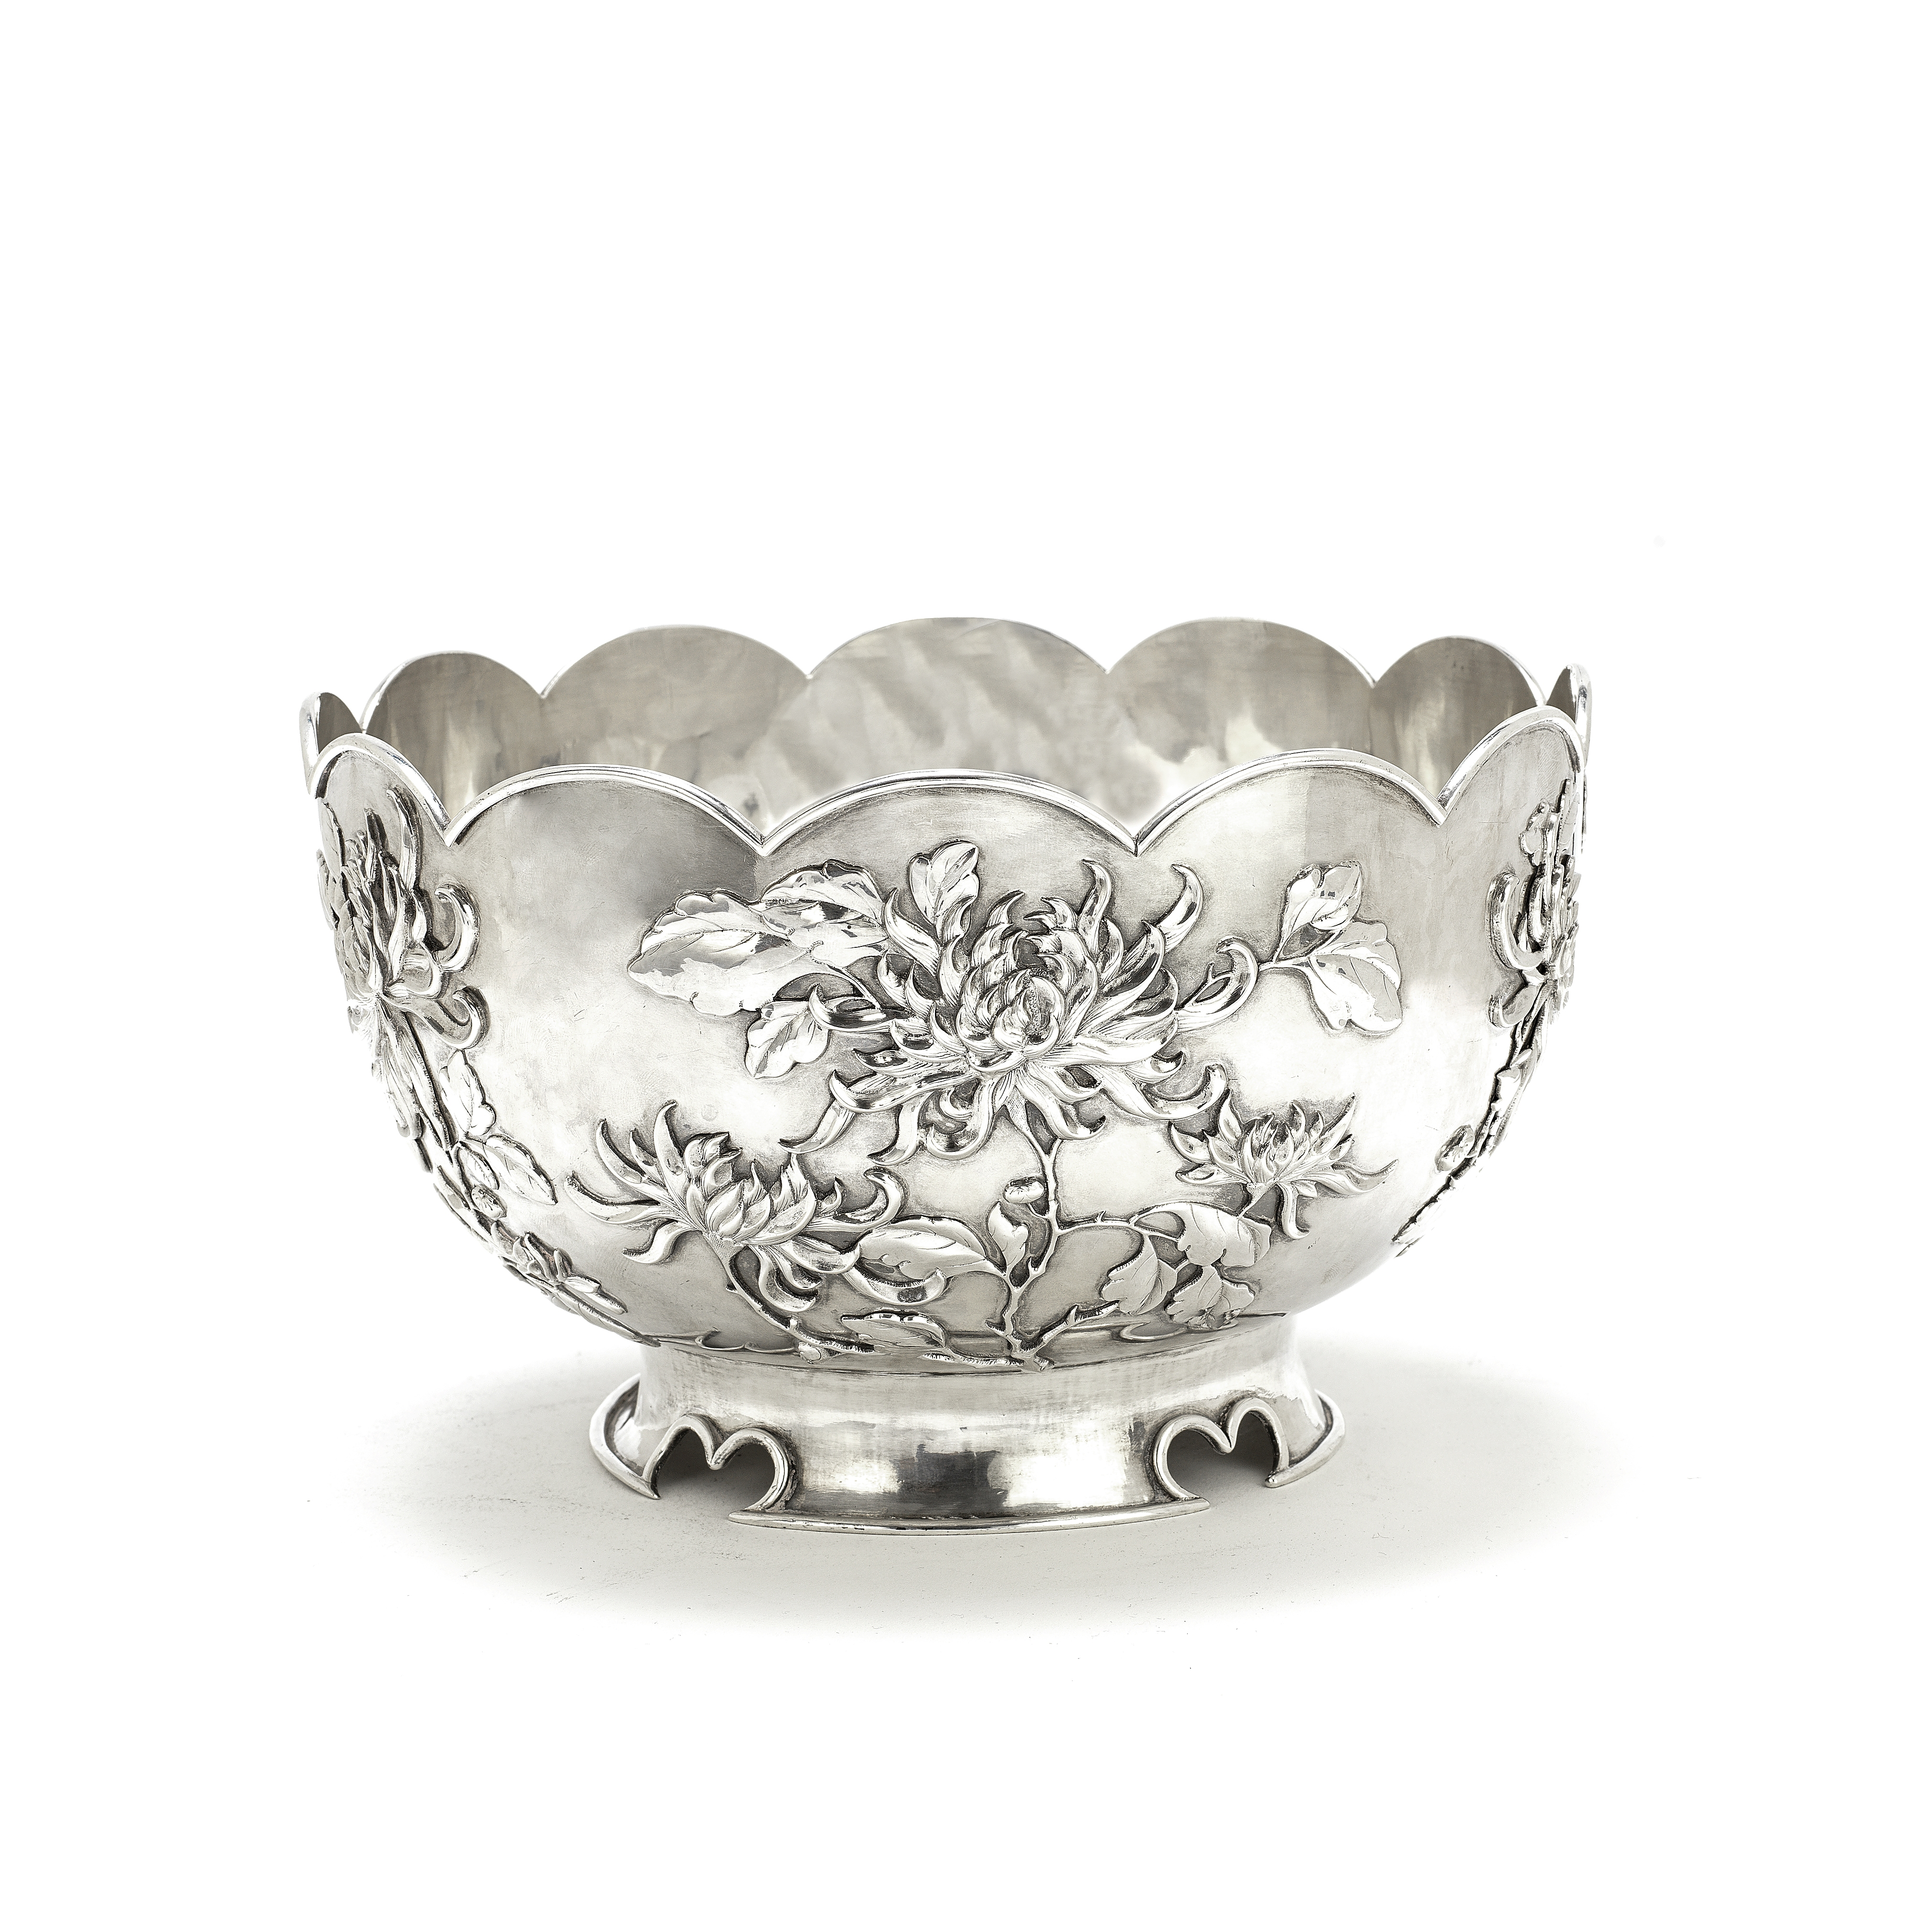 A CHINESE EXPORT SILVER 'CHRYSANTHEMUM' BOWL Mark of Wen Wei Ji, retailed by Wang Hing & Co., Can...